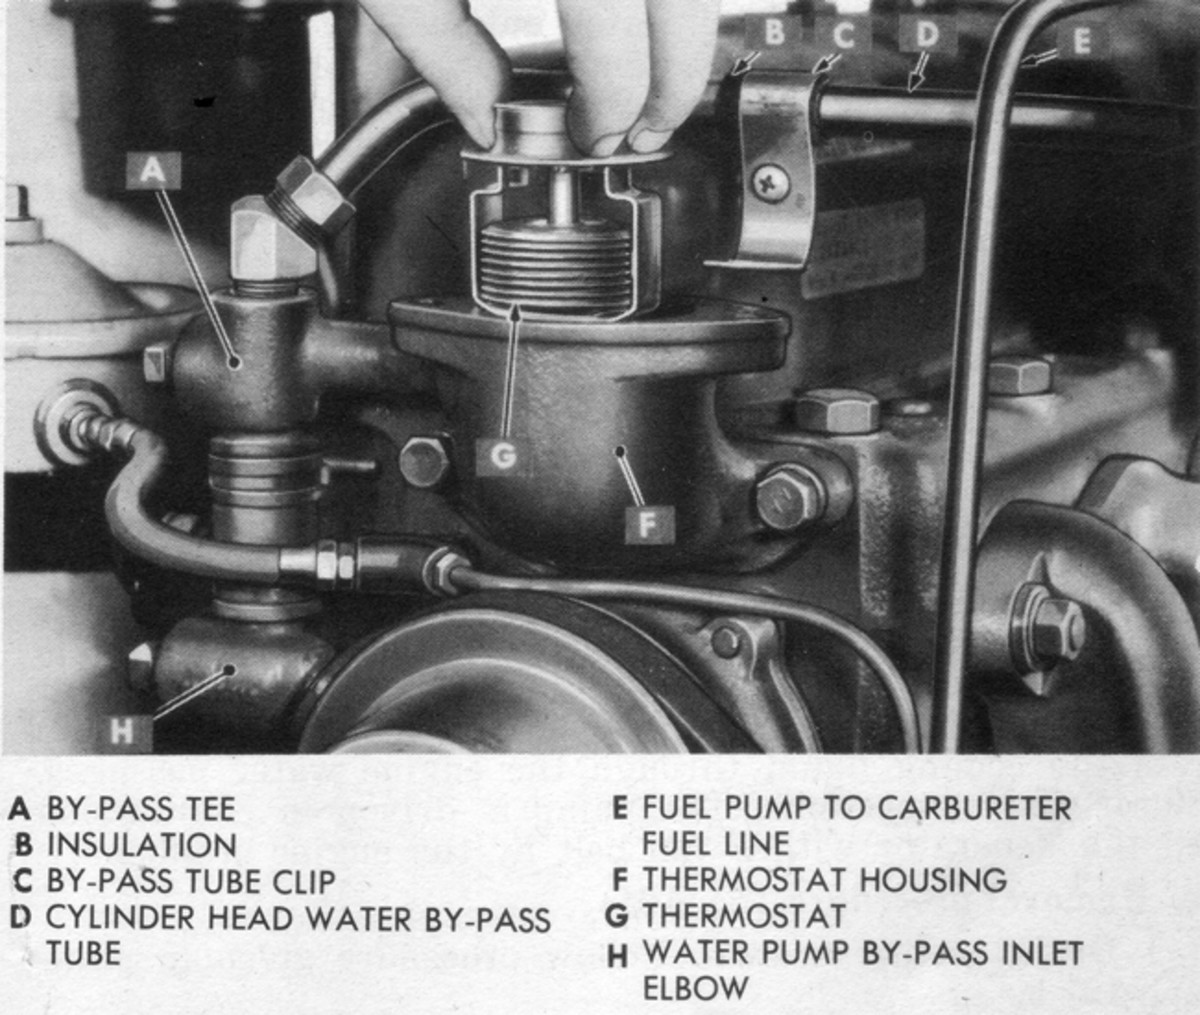 Does your engine really need a thermostat? Many folks have been advised now and then by shade tree mechanics to just take it out, especially in hot country. This is not a good idea. In many cases the engine will run too cold... but, you may also find that it will overheat. Why? Because without a thermostat to control the flow, the water may circulate through the radiator so fast that it doesn't have time to get rid of its heat. Thermostats are fairly cheap and easy to replace in most common HMVs, so if your vehicle is driven frequently, it's wise to replace it about every five years. It's also smart to carry a new spare thermostat and gasket in your vehicle.